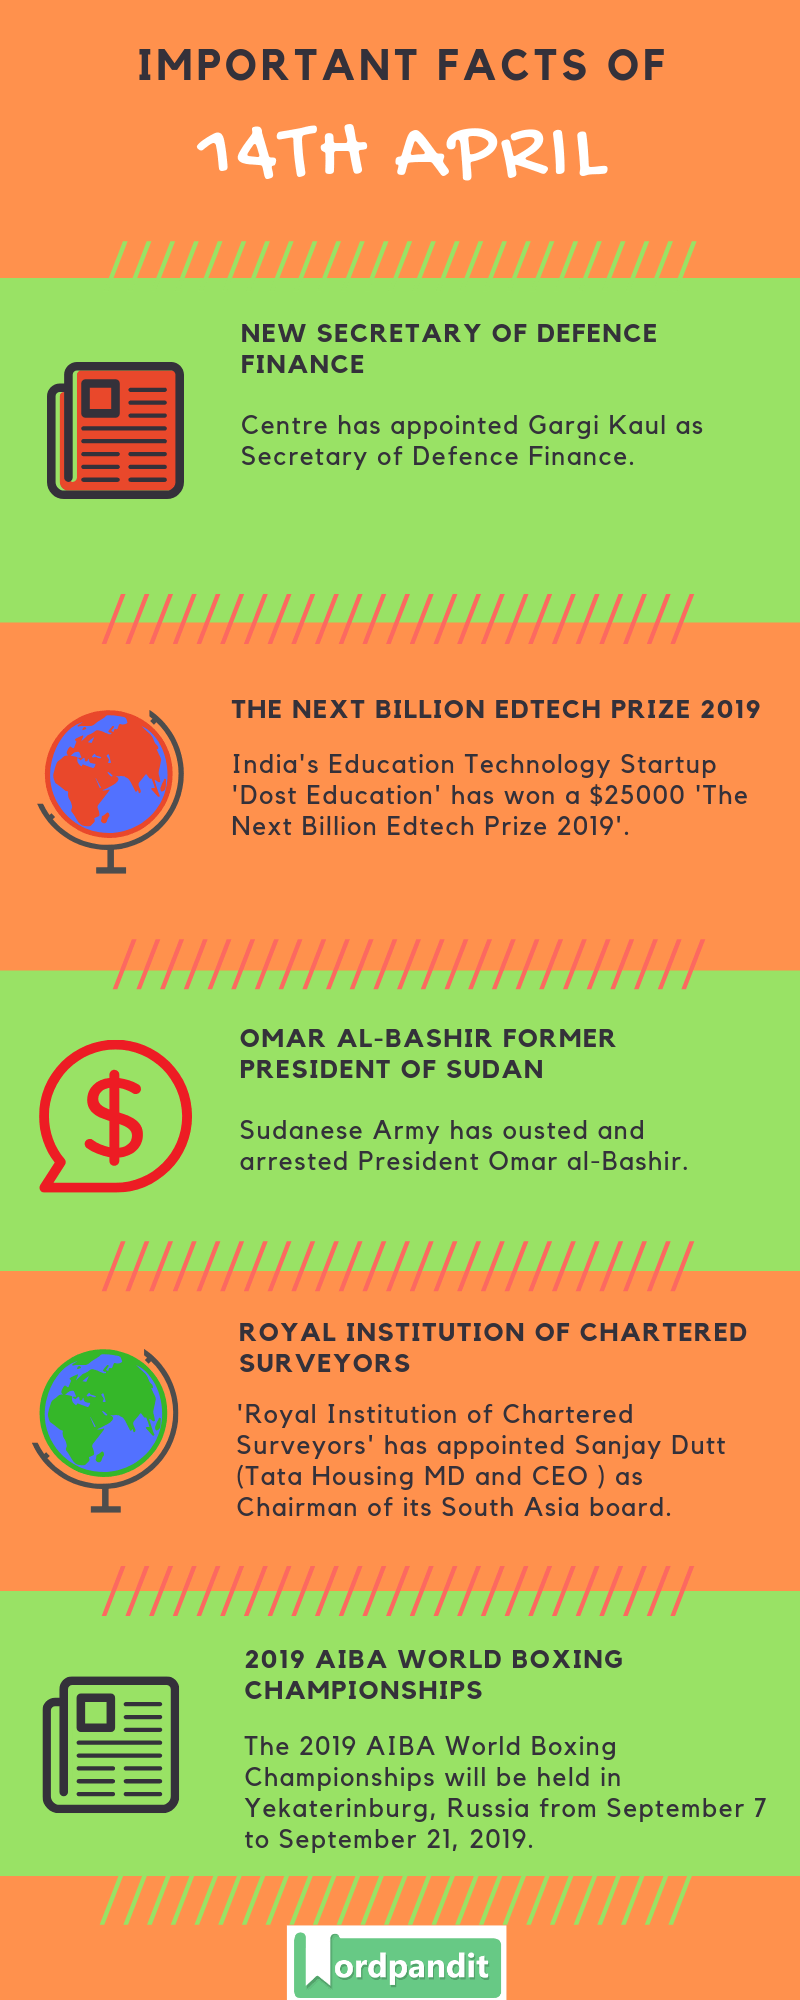 Daily Current Affairs 14 April 2019 Current Affairs Quiz 14 April 2019 Current Affairs Infographic